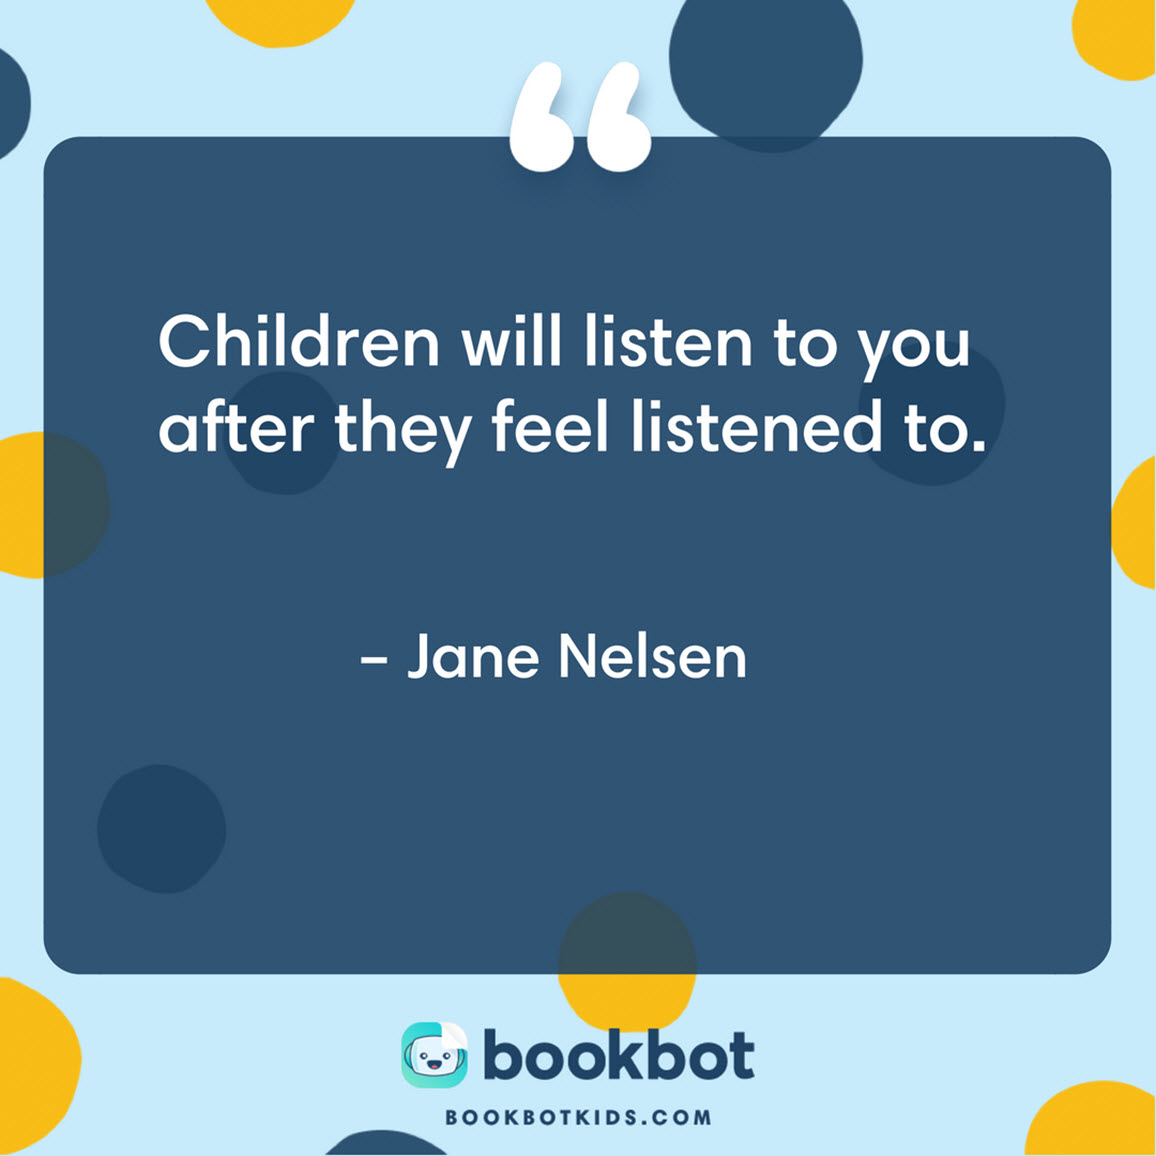 Children will listen to you after they feel listened to. – Jane Nelsen